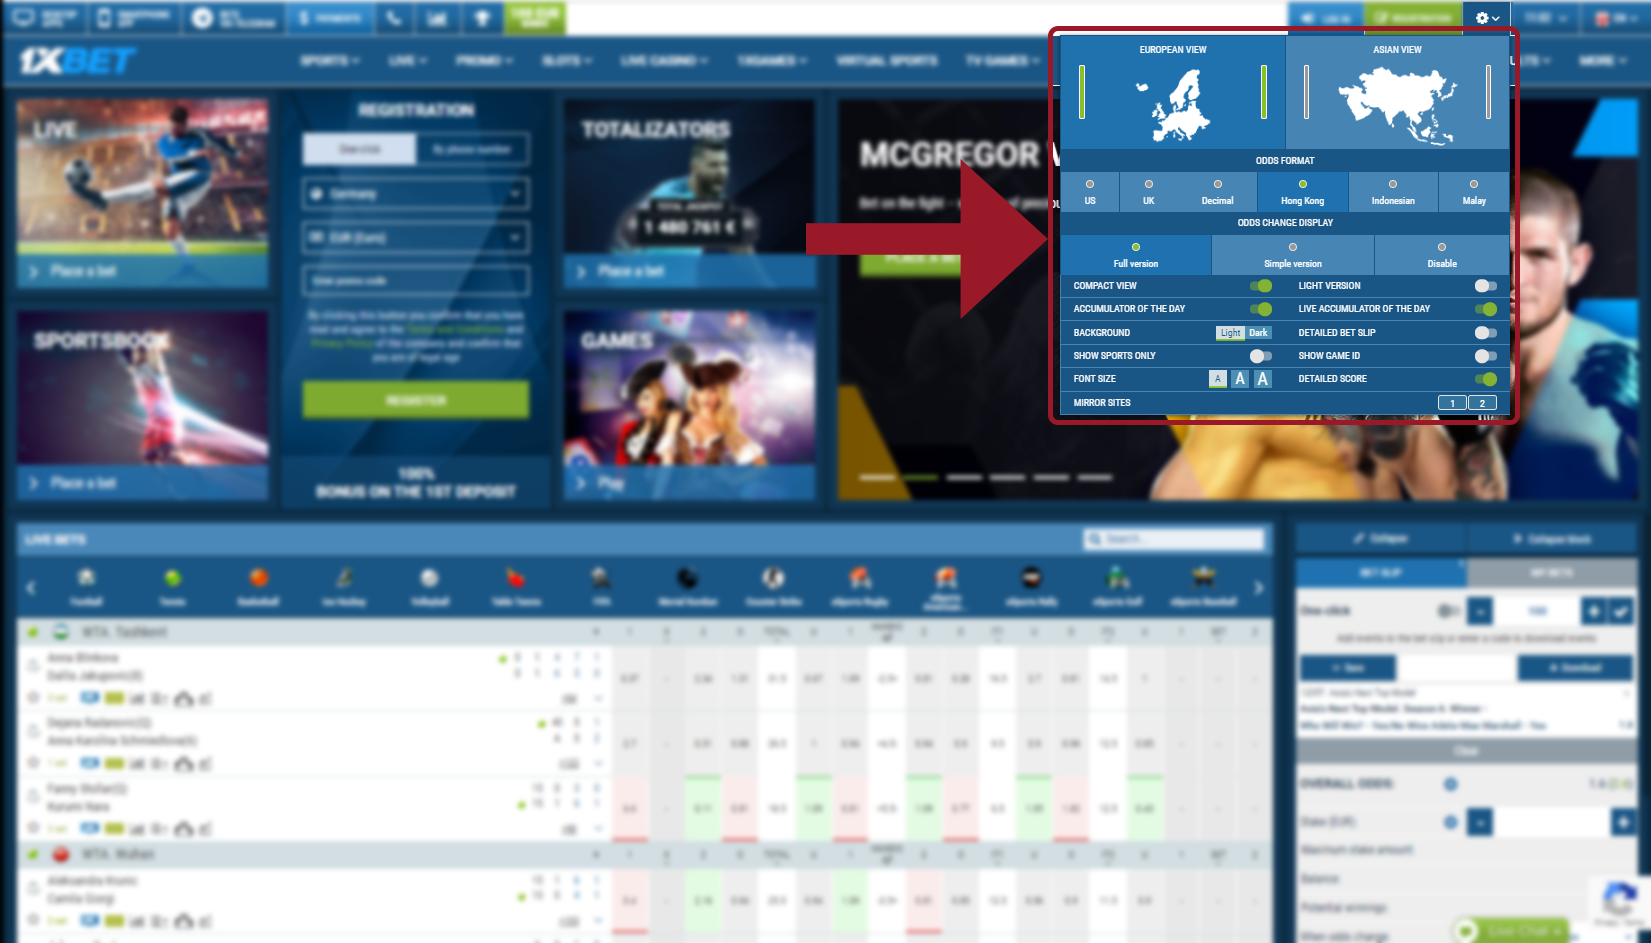 Customize 1xBet Sportsbook's interface for Muay Thai betting